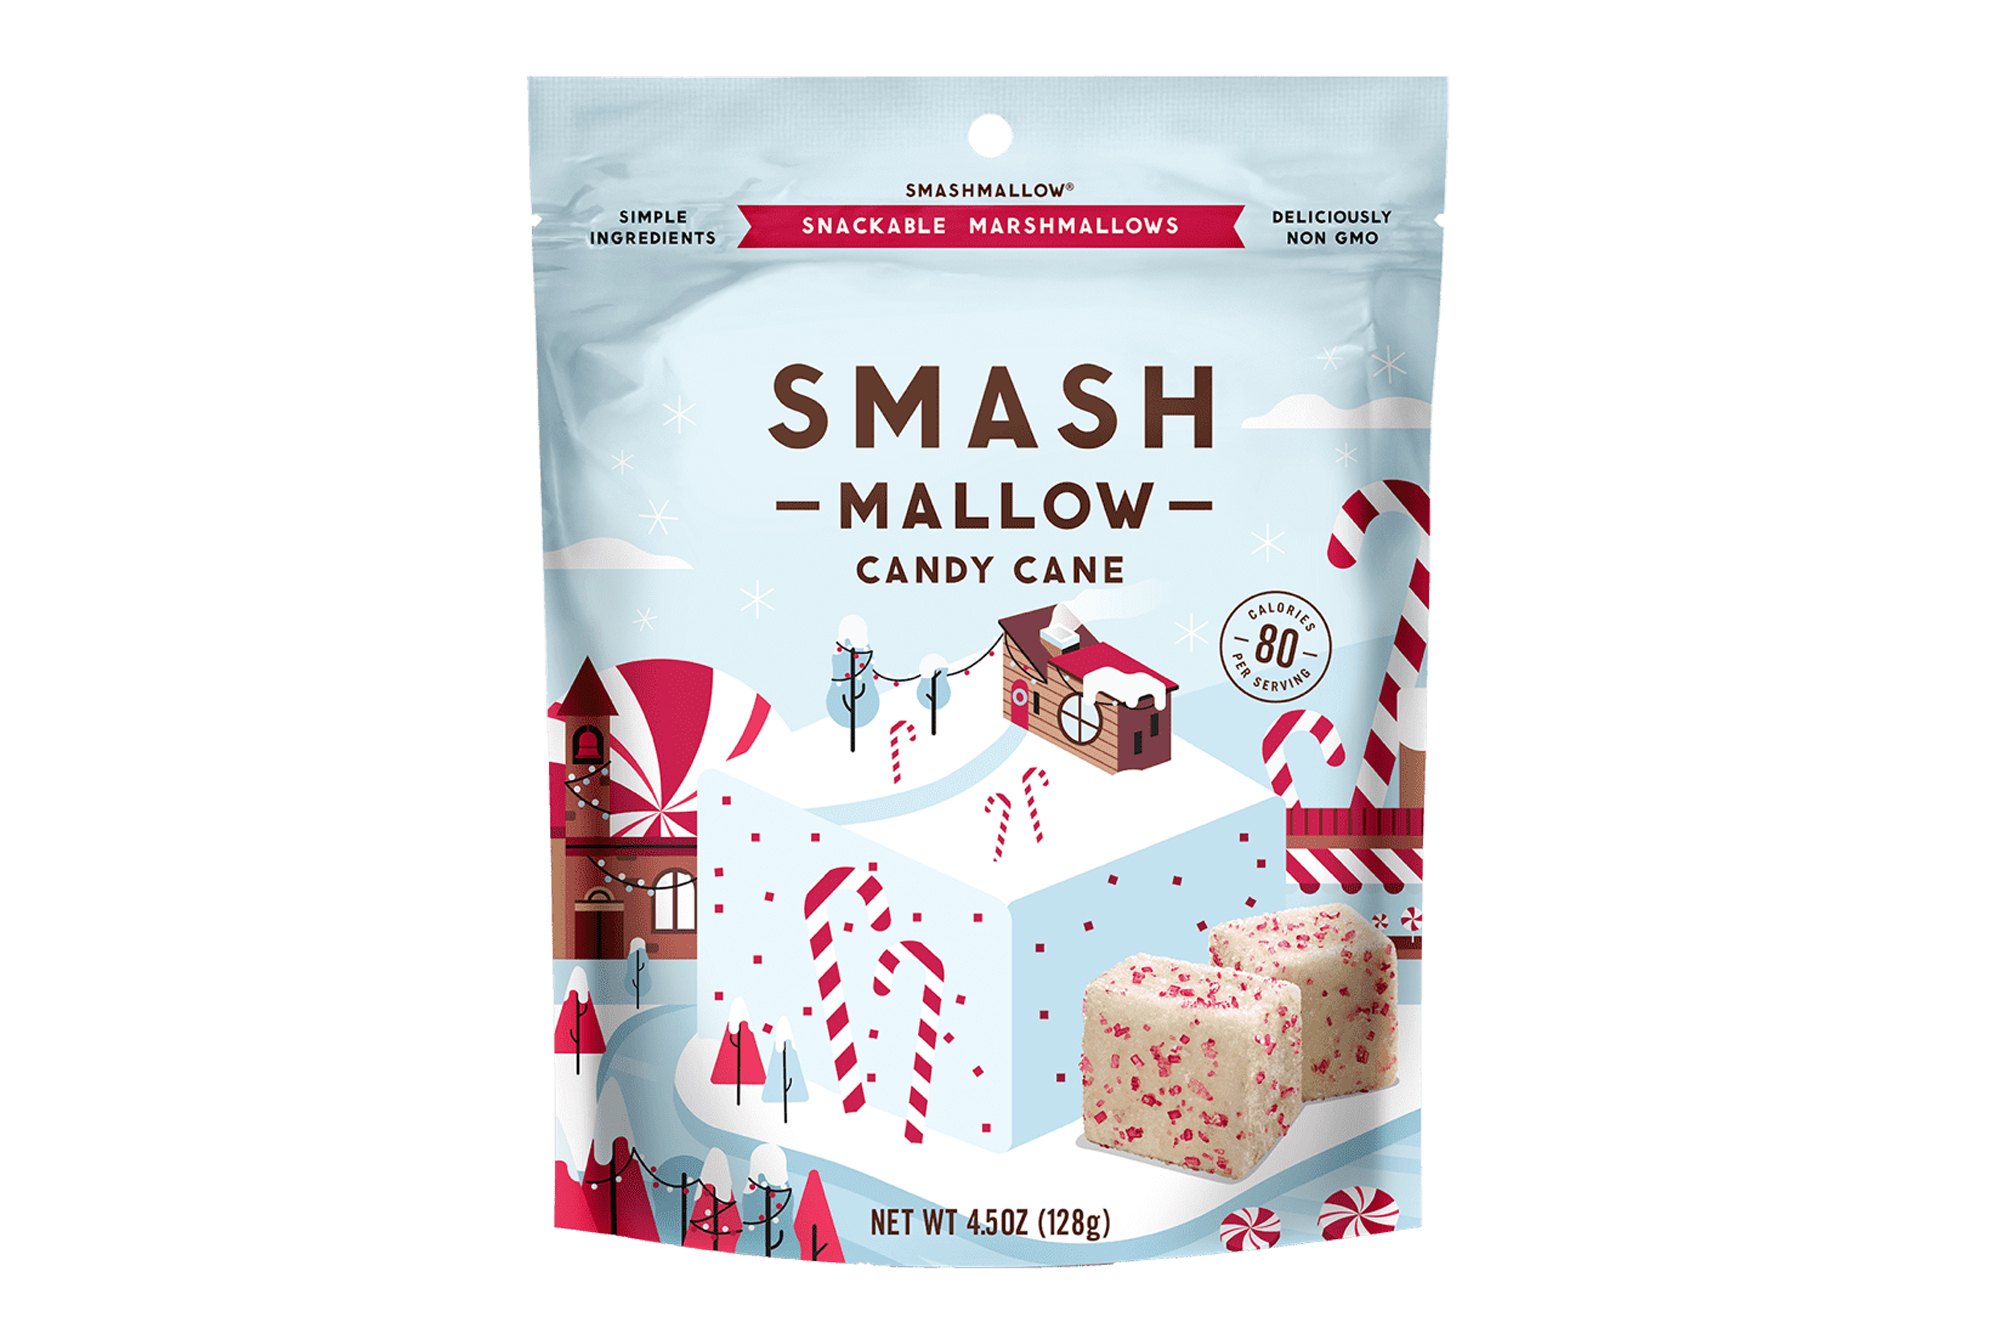 Smash Mallow Candy Cane